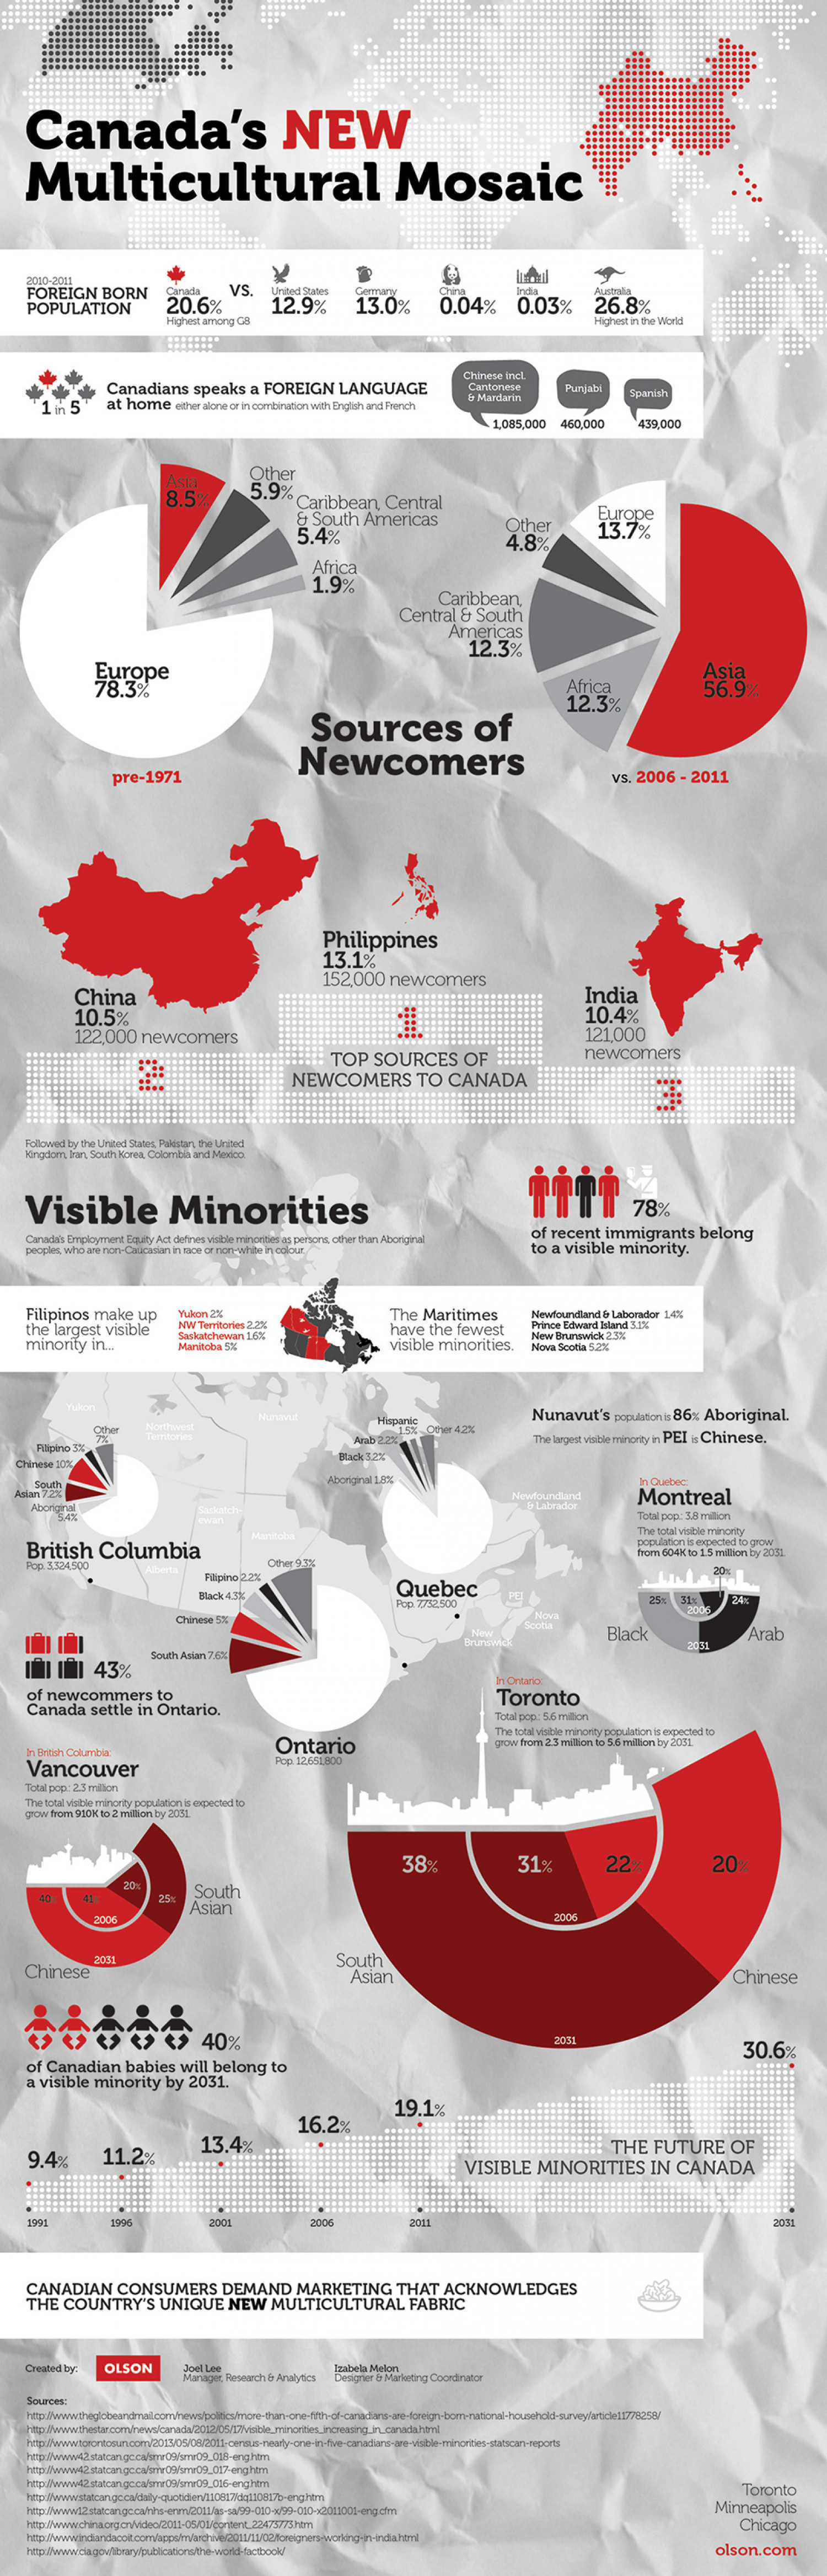 Canada's New Multicultural Mosaic Infographic